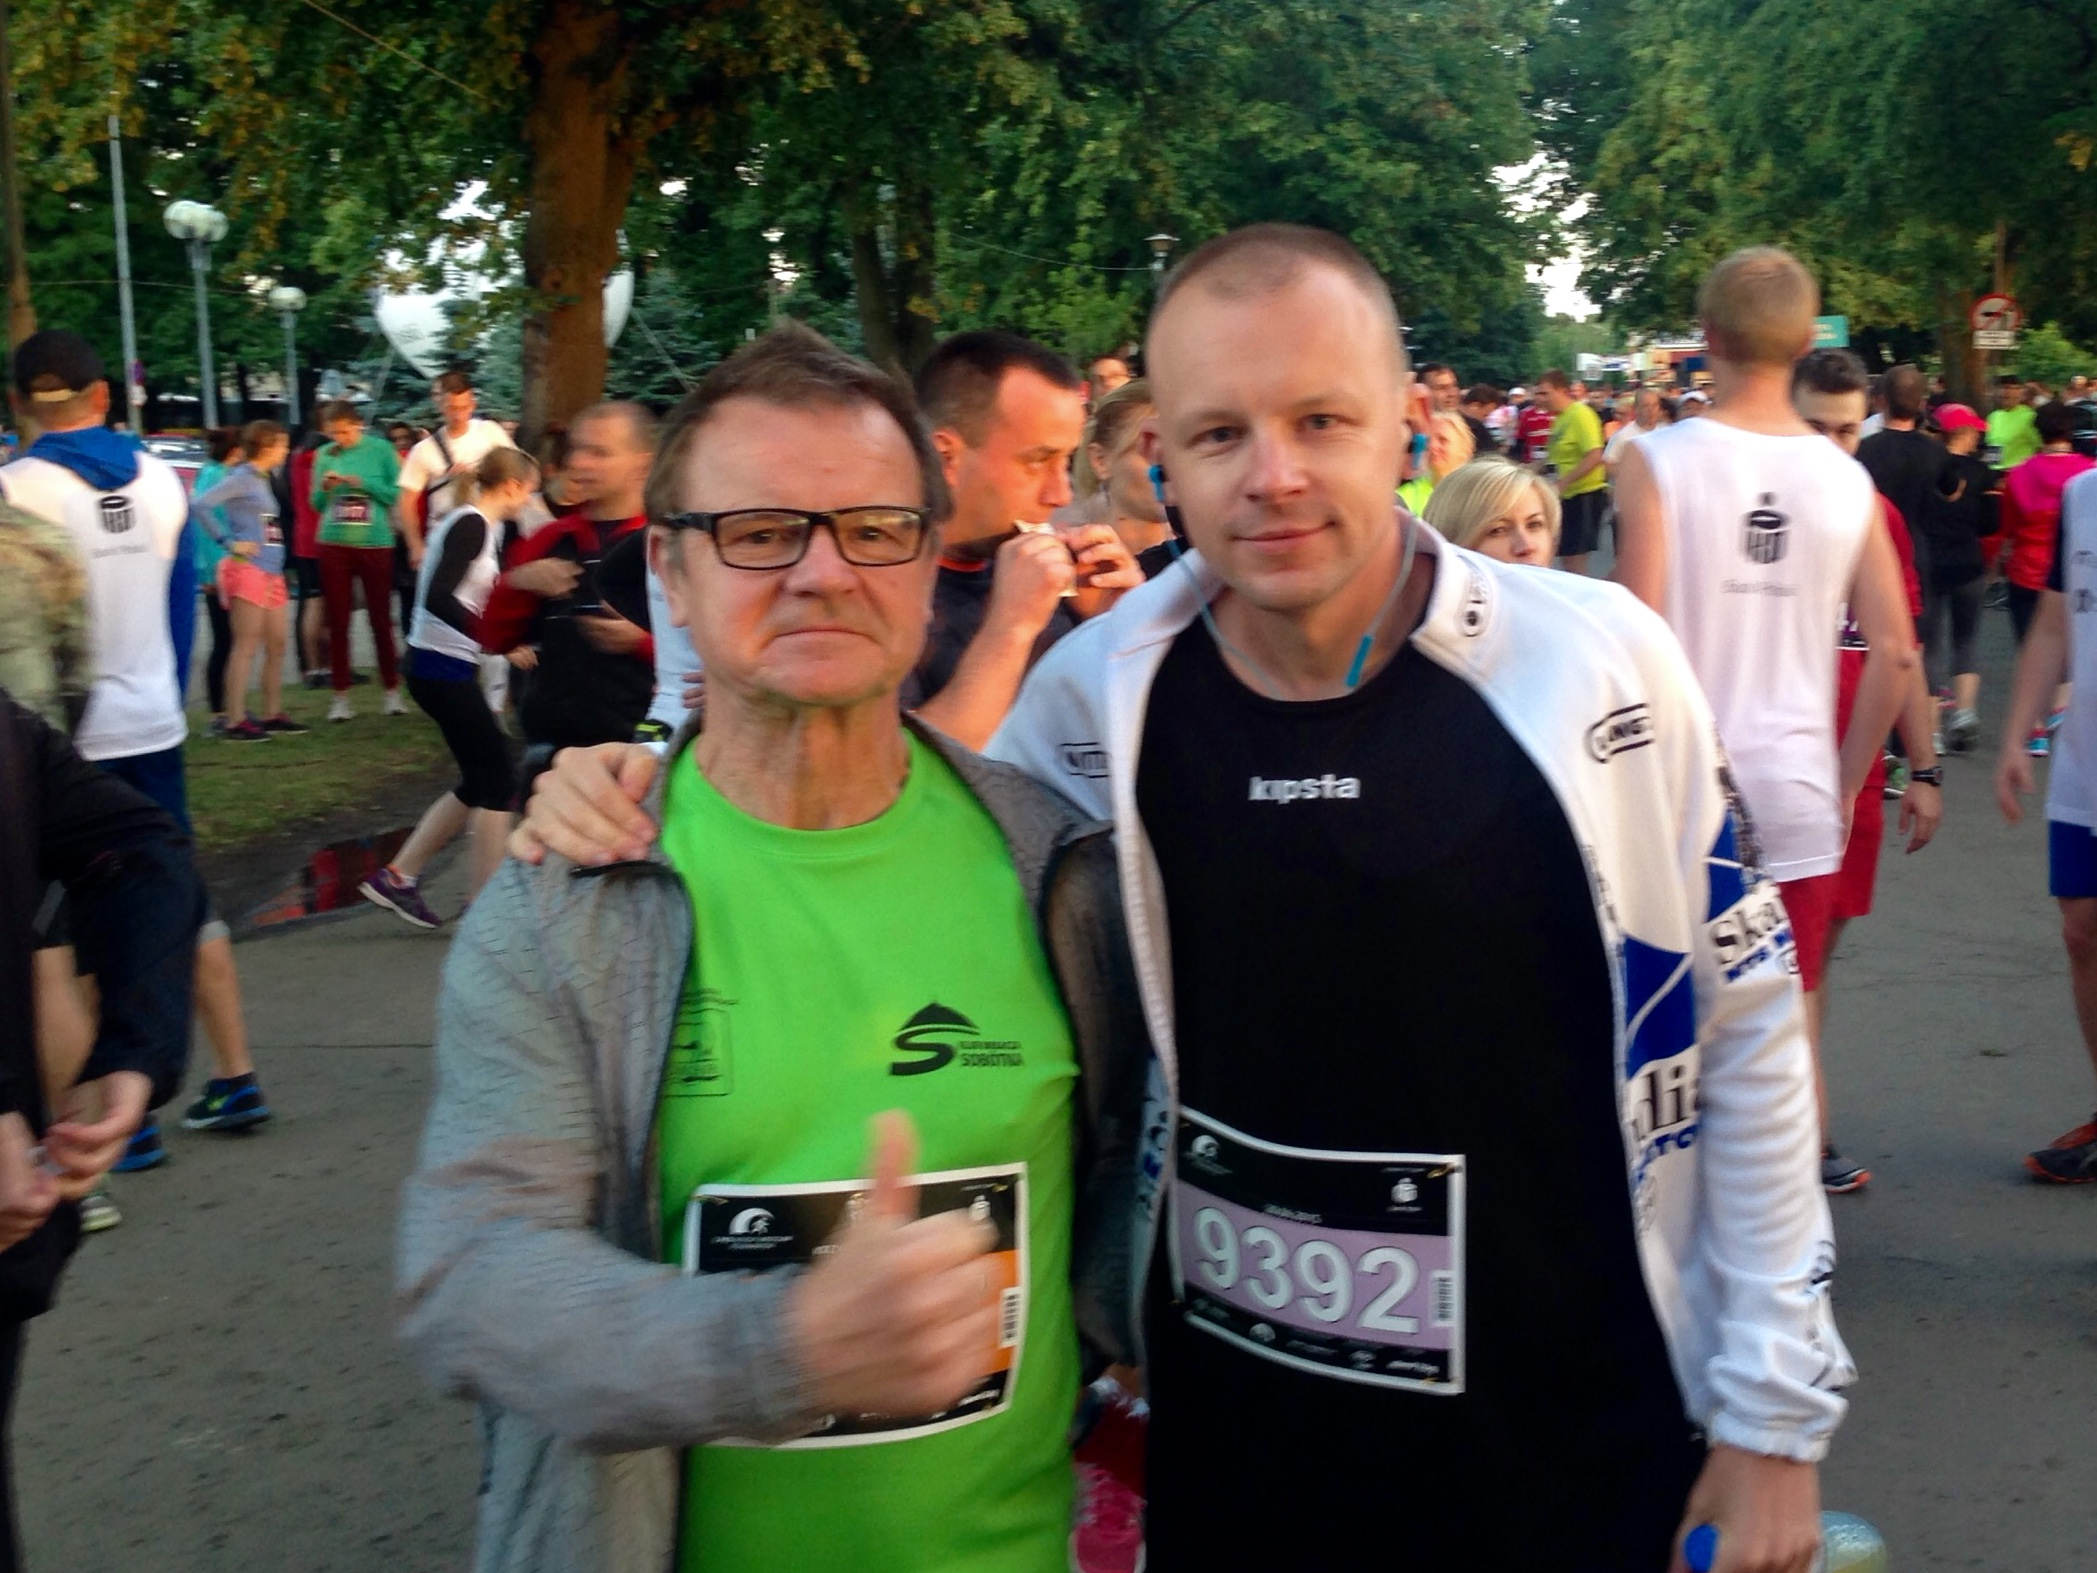 Before half-marathon with my father